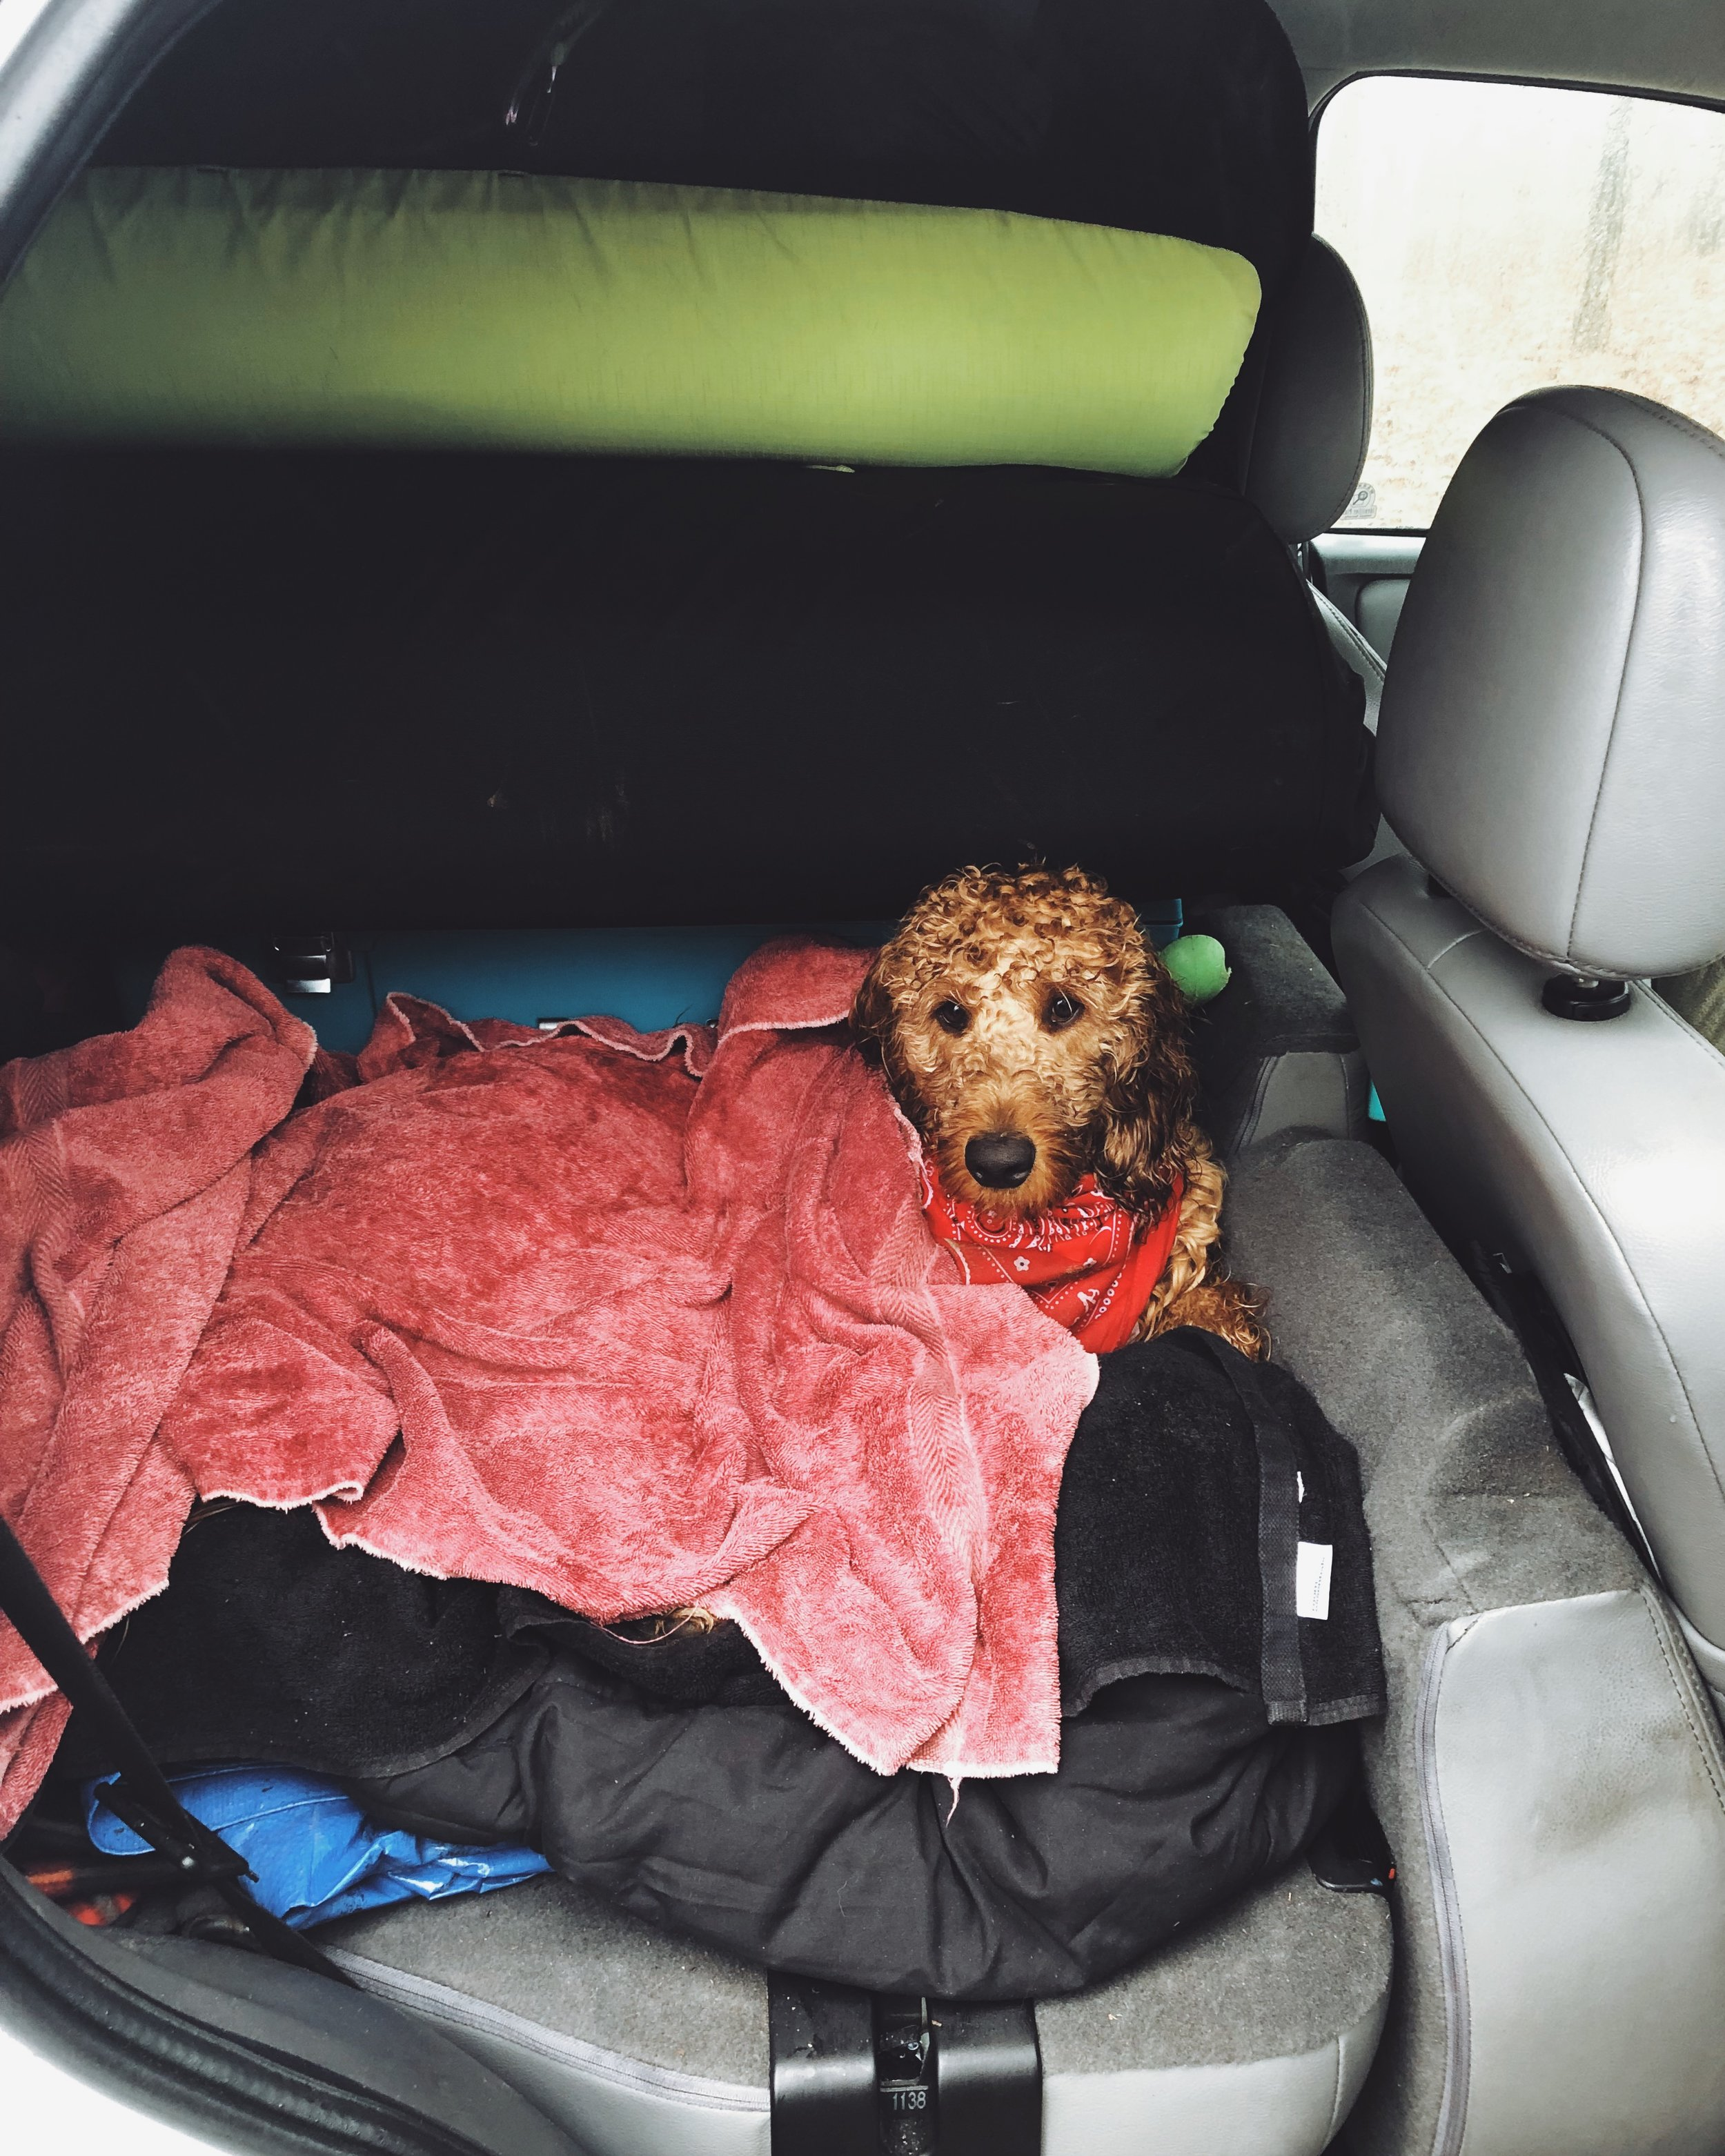 - We are really lucky that Romeo is a great car dog. For a long trip, we make sure to bring an old comforter to make a cozy spot for him that we can then move to the tent. We also bring a few old towels to keep in the car for at the end of our hikes because Romeo loves to get wet and dirty! I use a silicone kids' cup as a car water bowl for him. It works great because I can leave it in the backseat cupholder for him to access without too much of a mess.